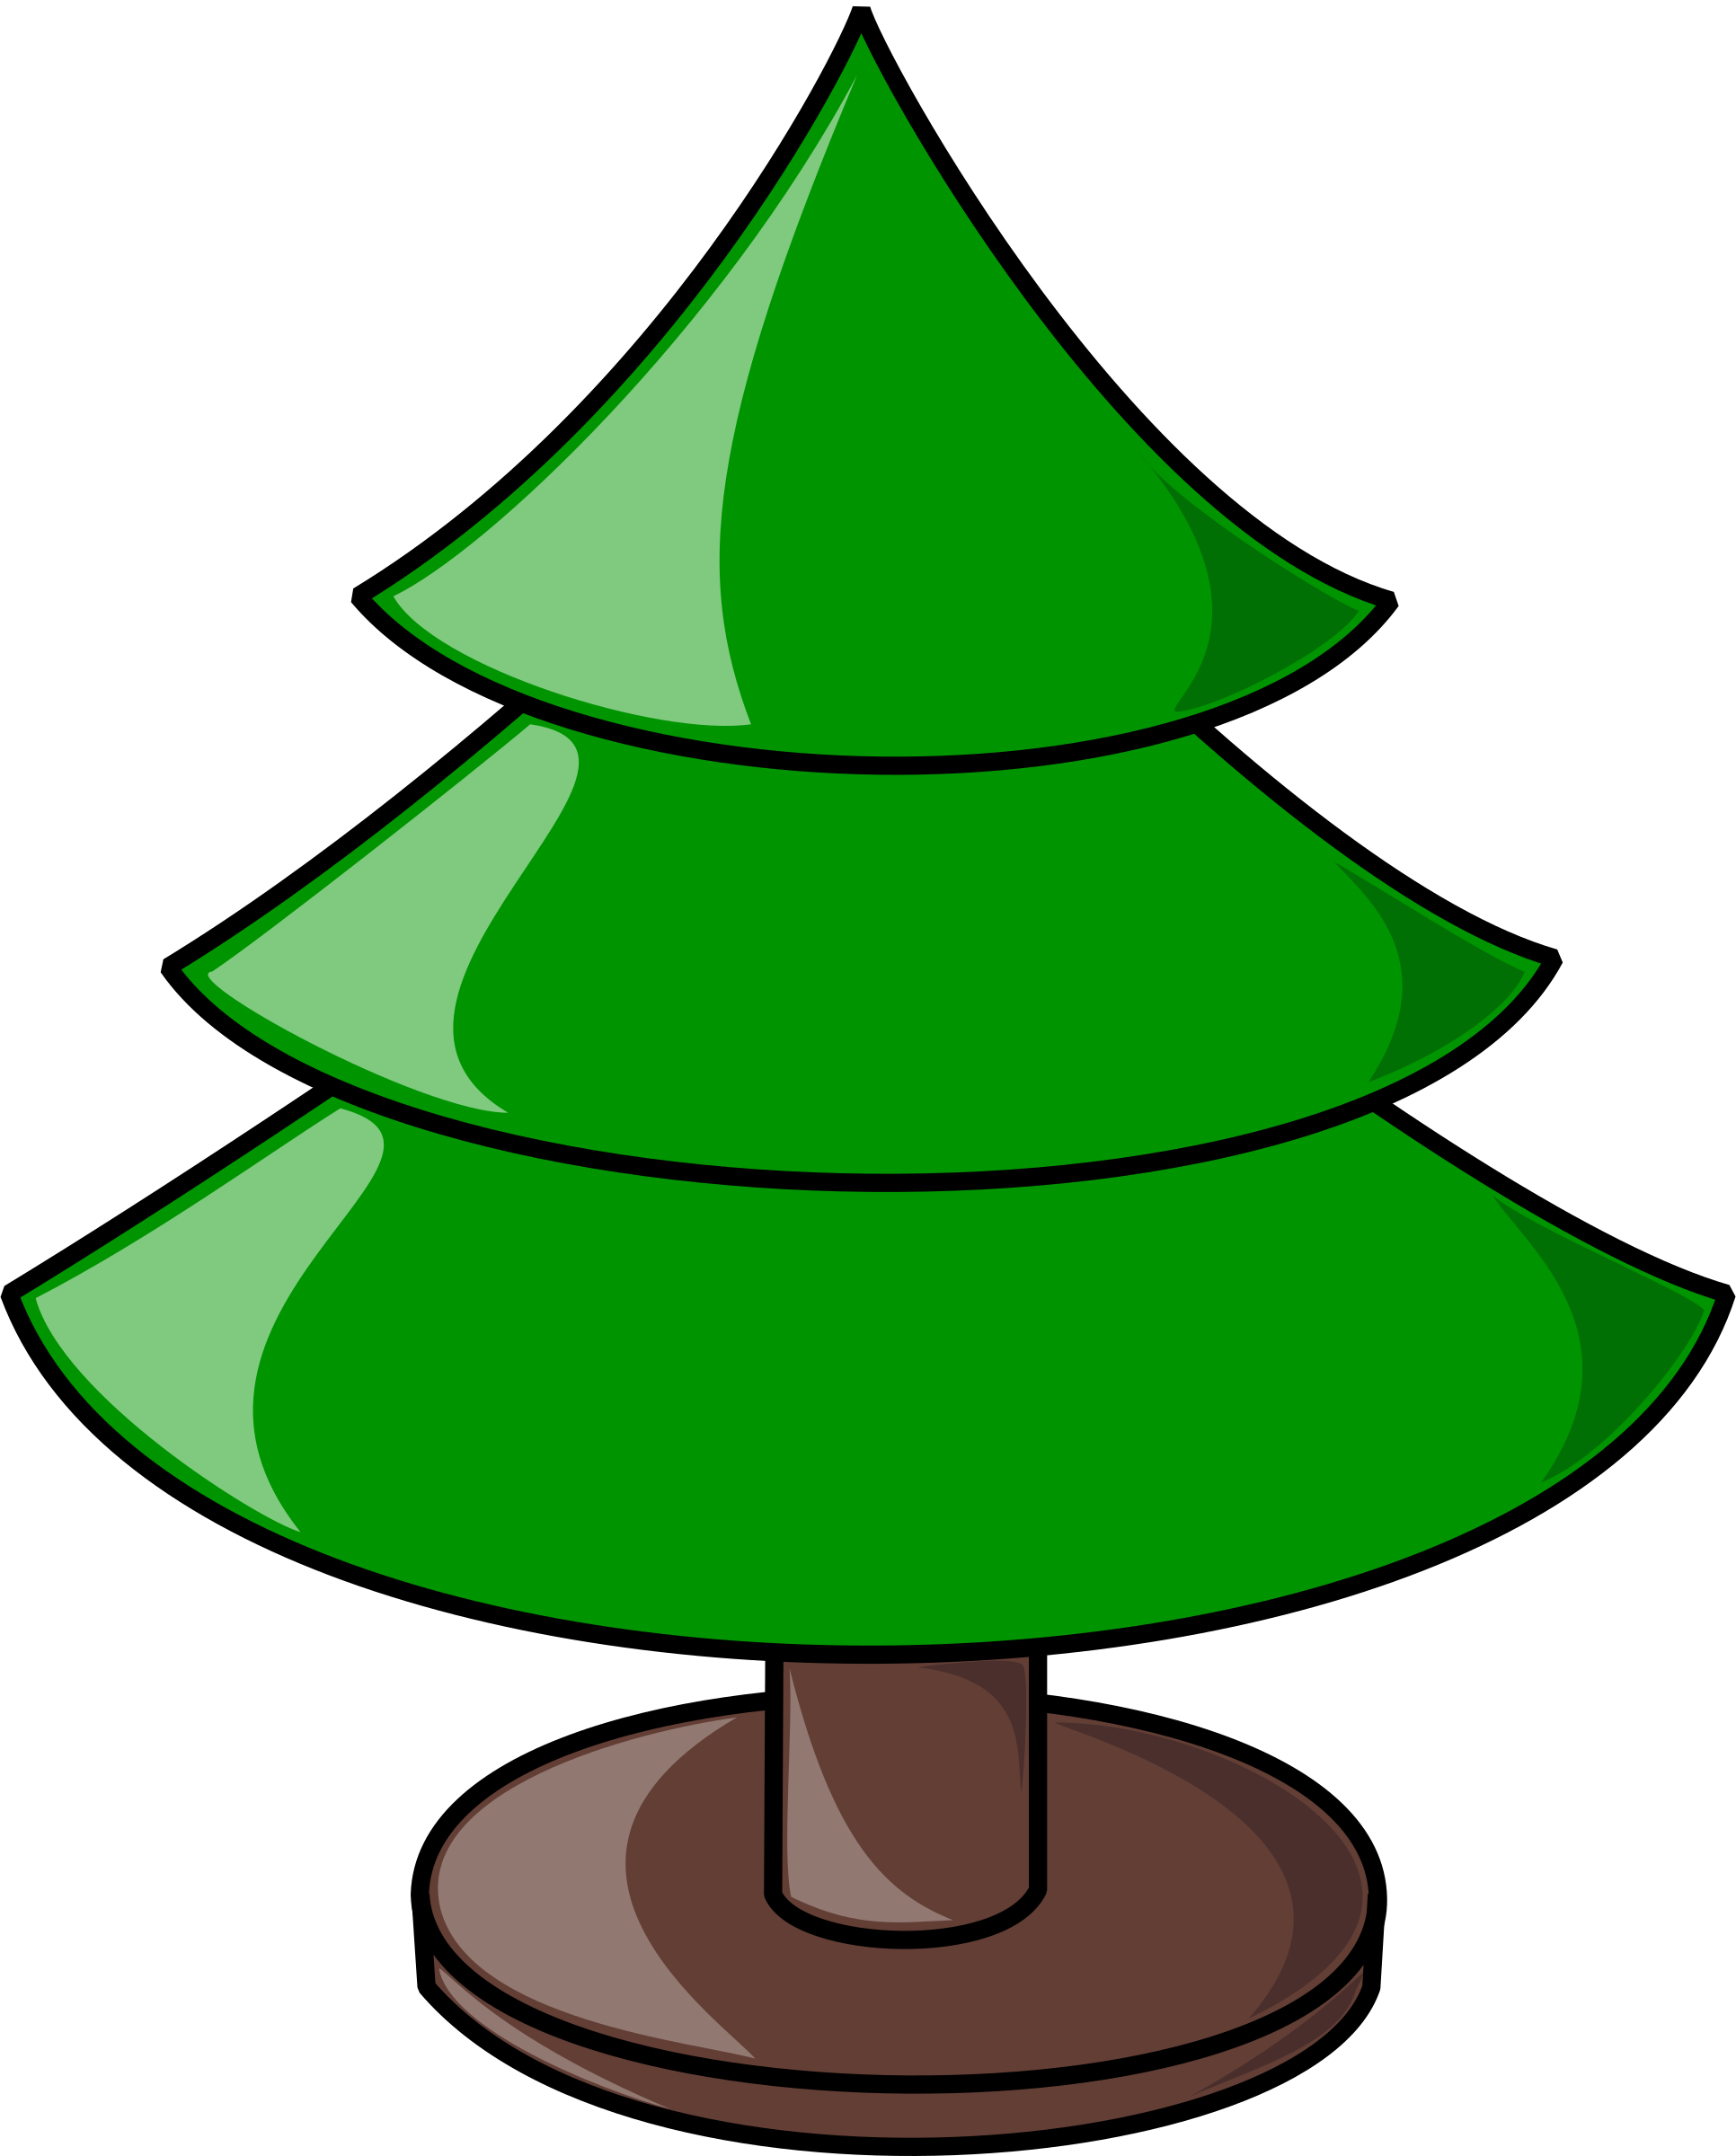 Fancy christmas tree clipart graphic library download Clipart - Christmas Tree (plain) graphic library download